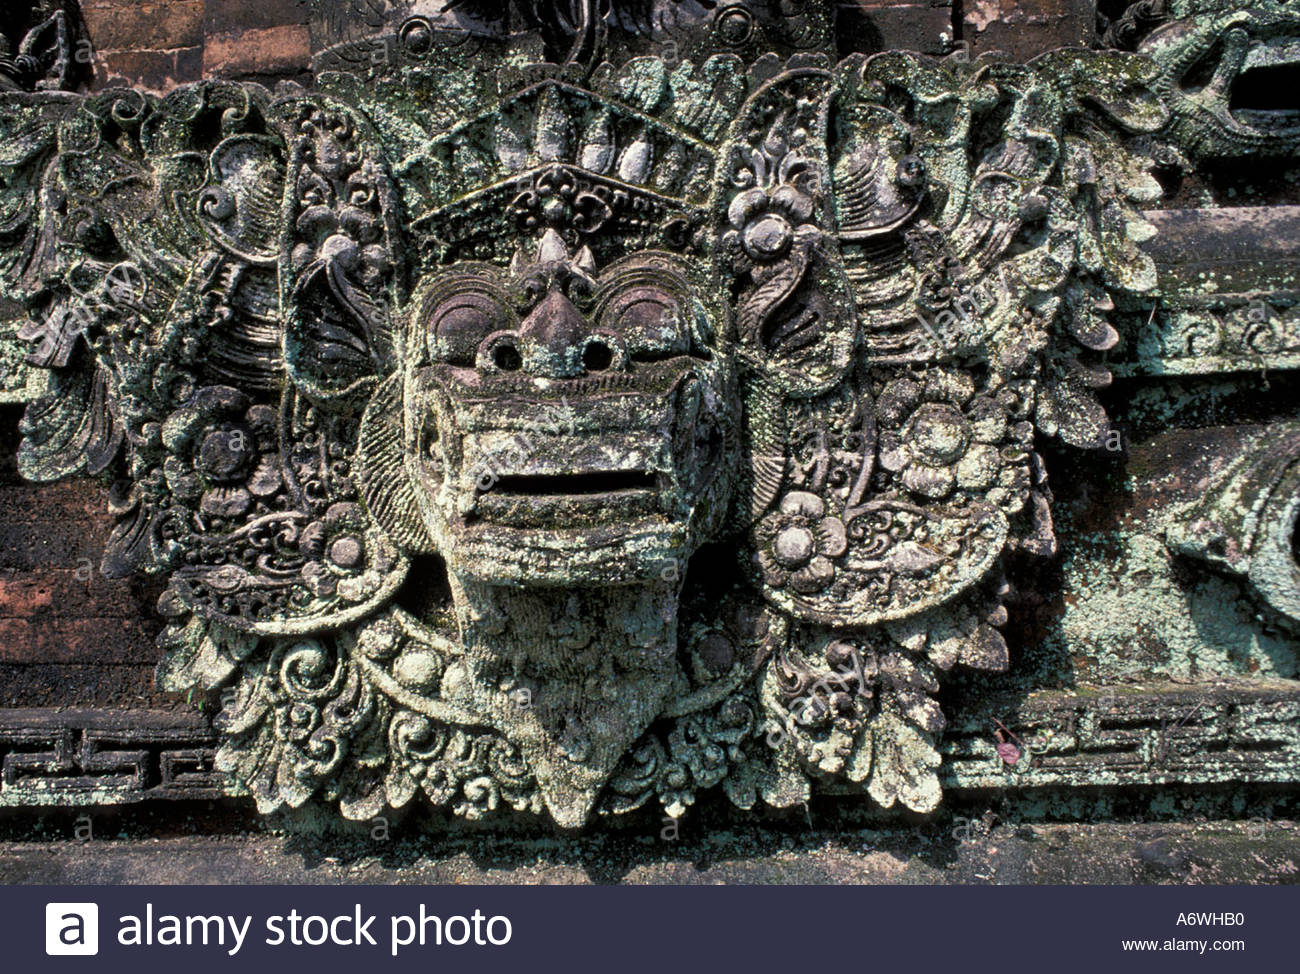 Asia indonesia bali stone wall carvings stockfoto